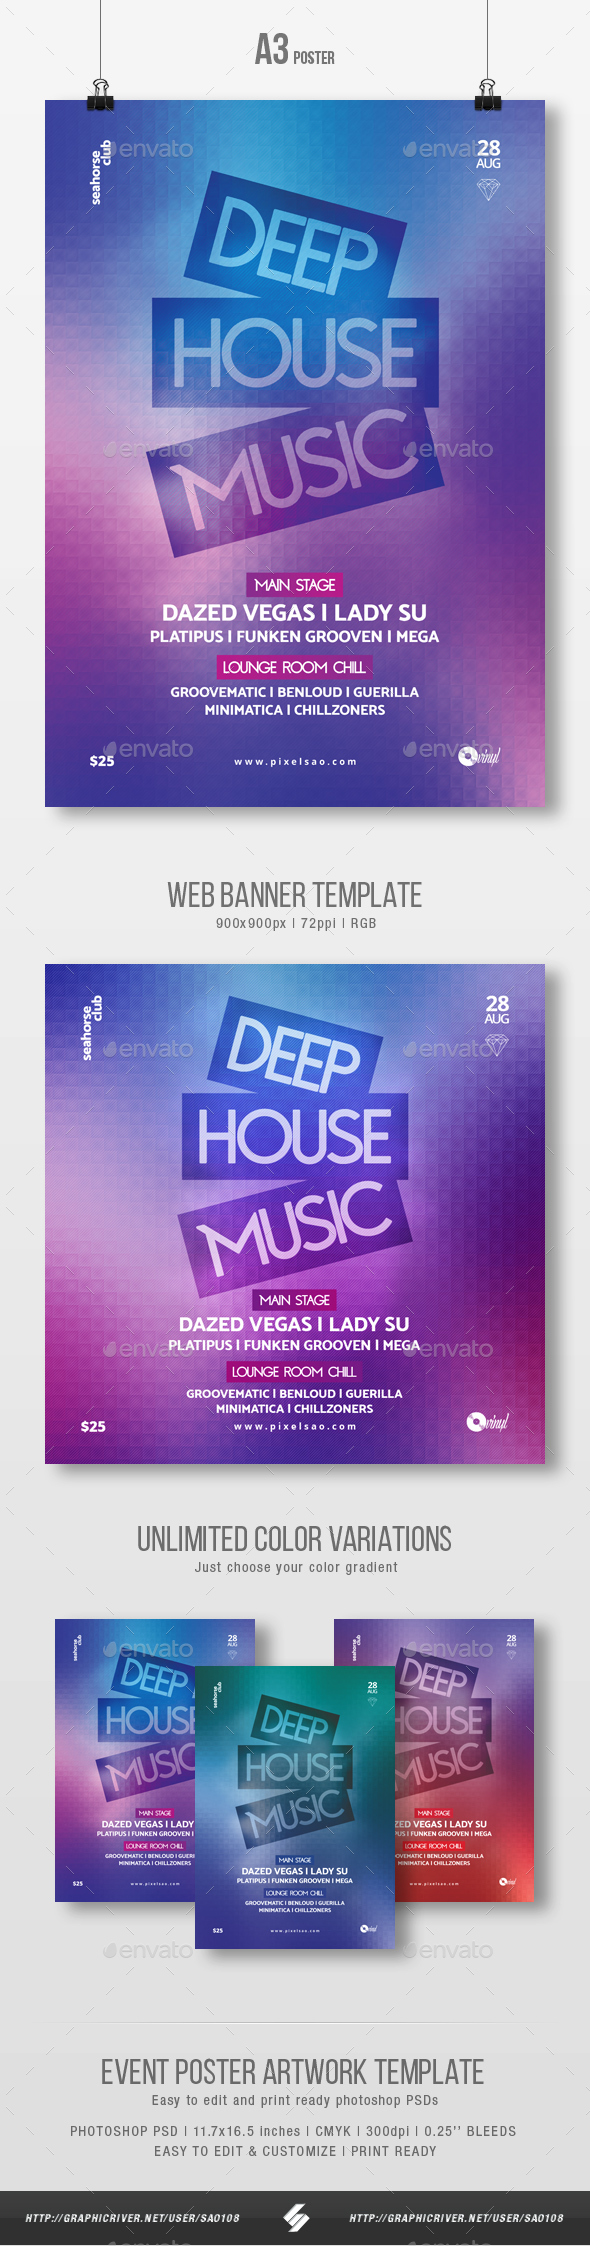 Deep House Music - Party Flyer / Poster Template A3 - Clubs & Parties Events